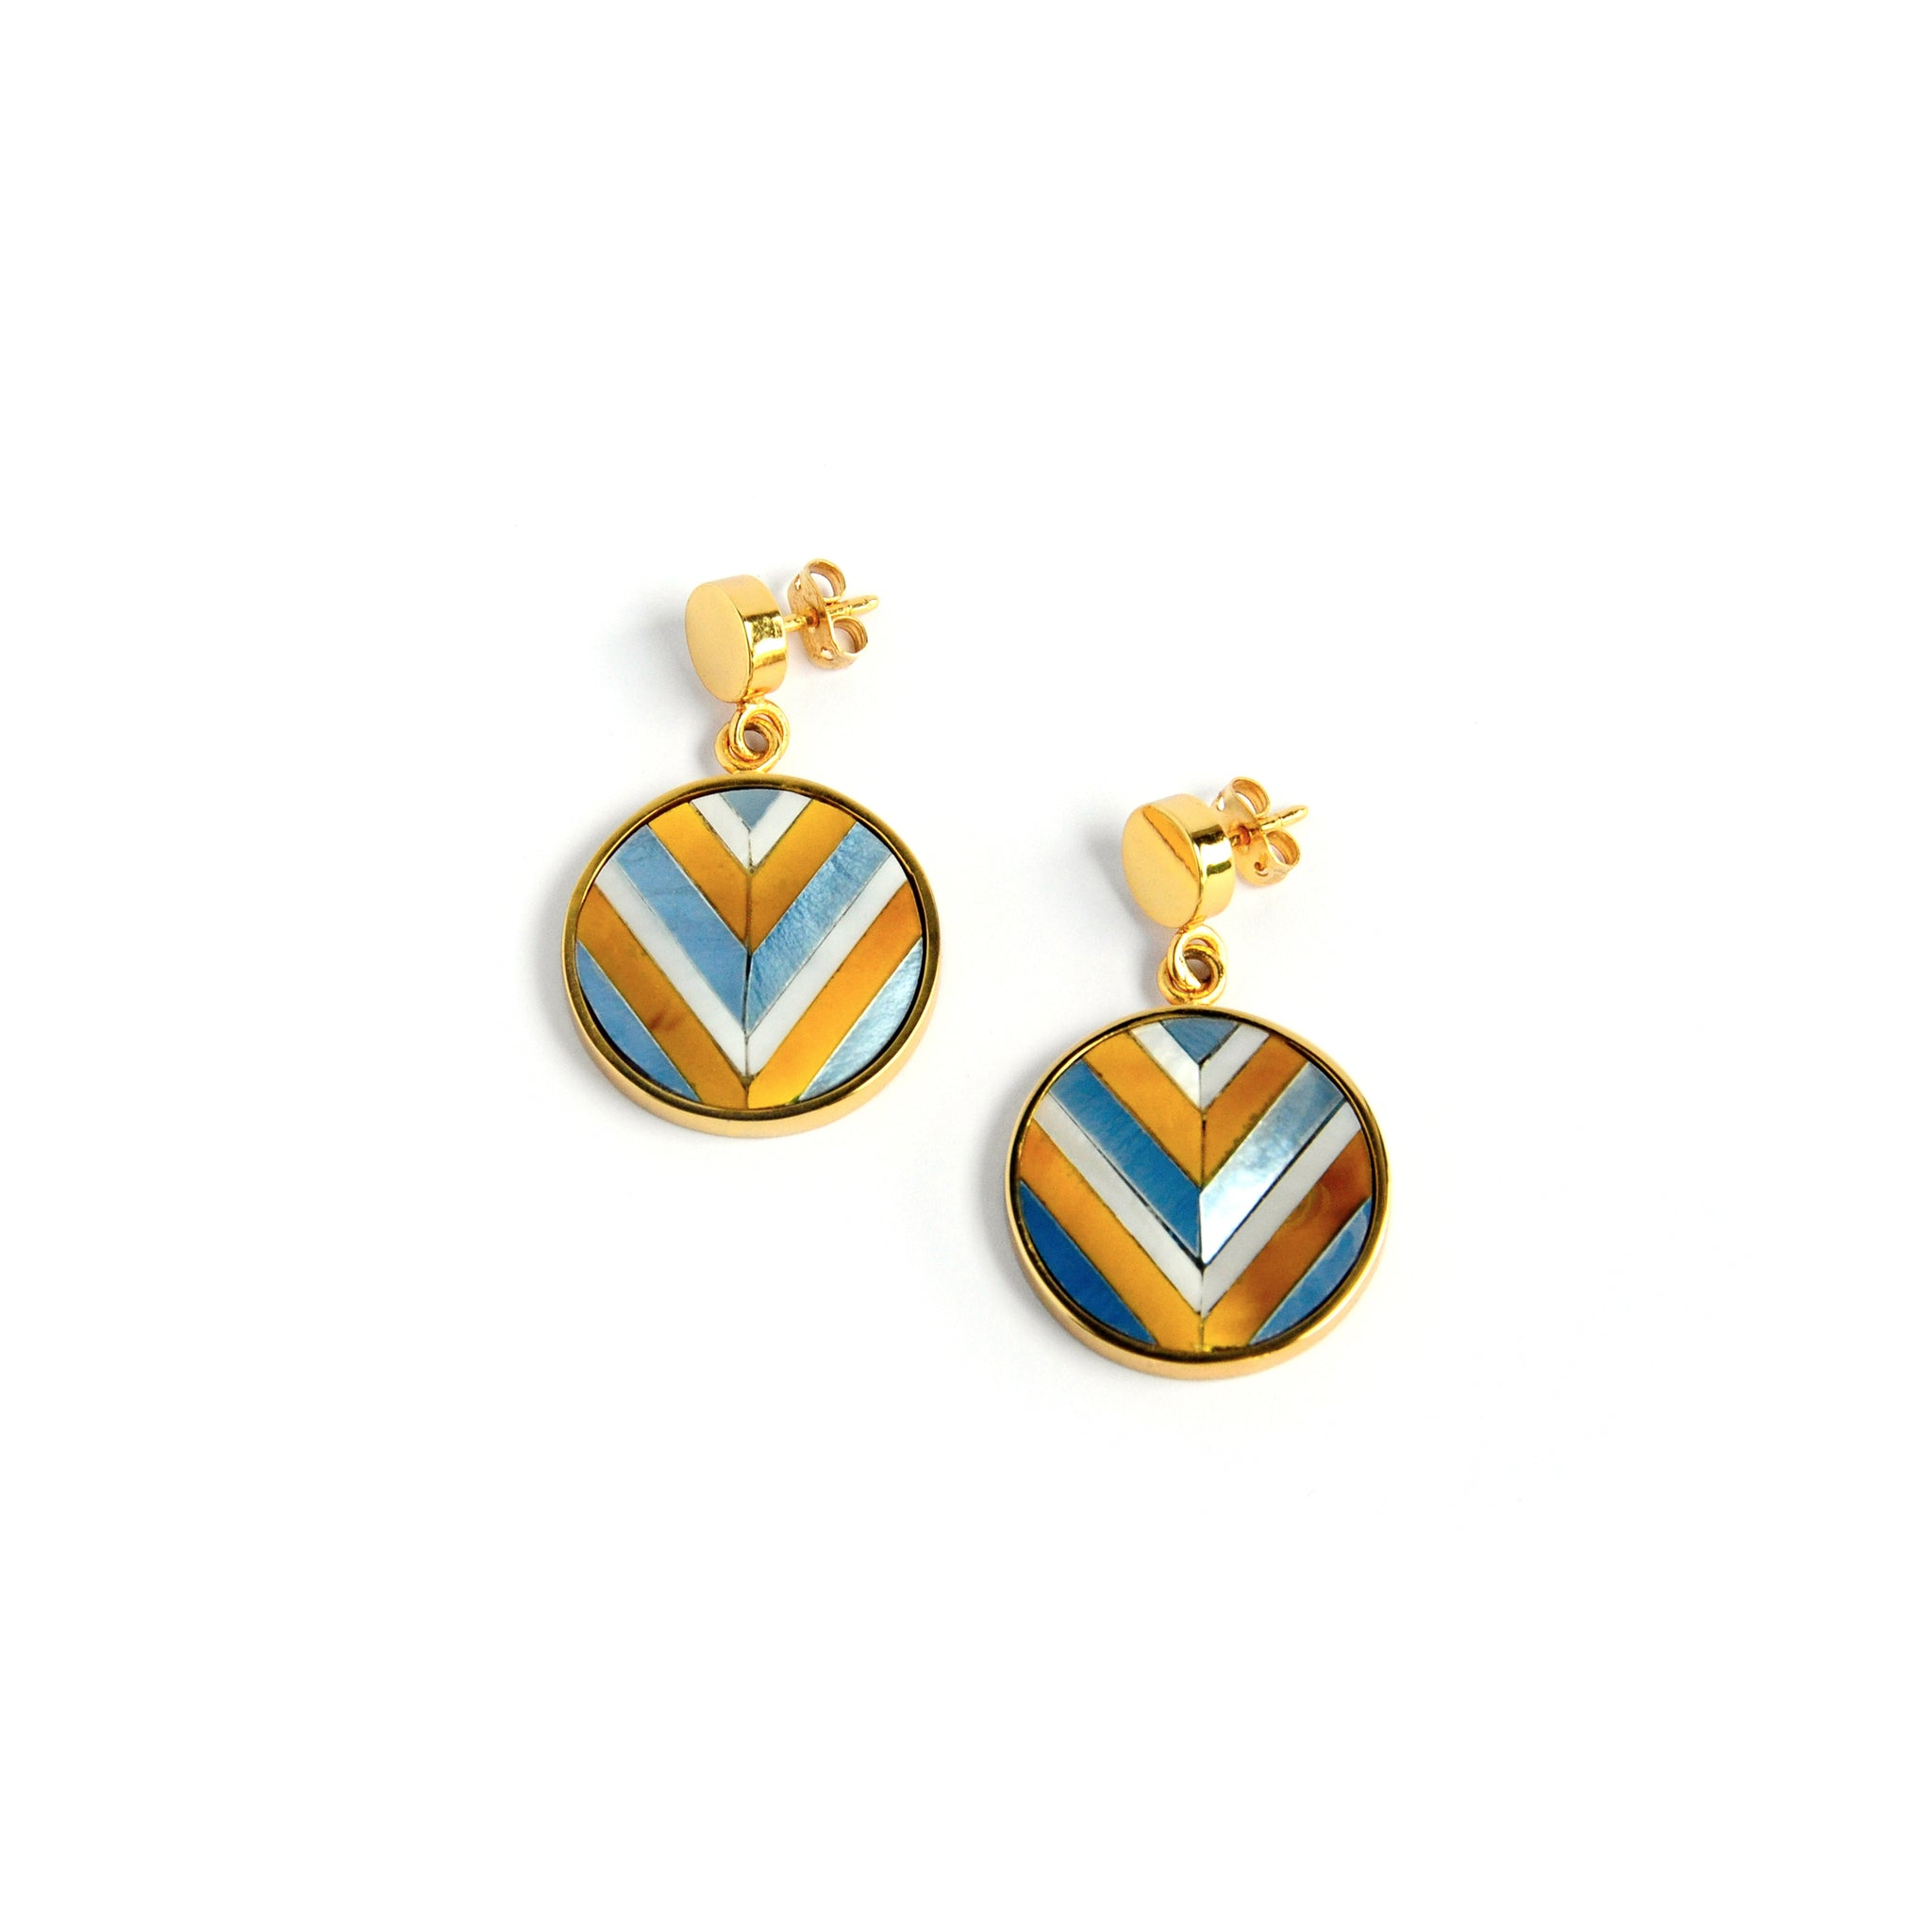 Vivian Mini Earrings - Chevron - Susanne Verallo